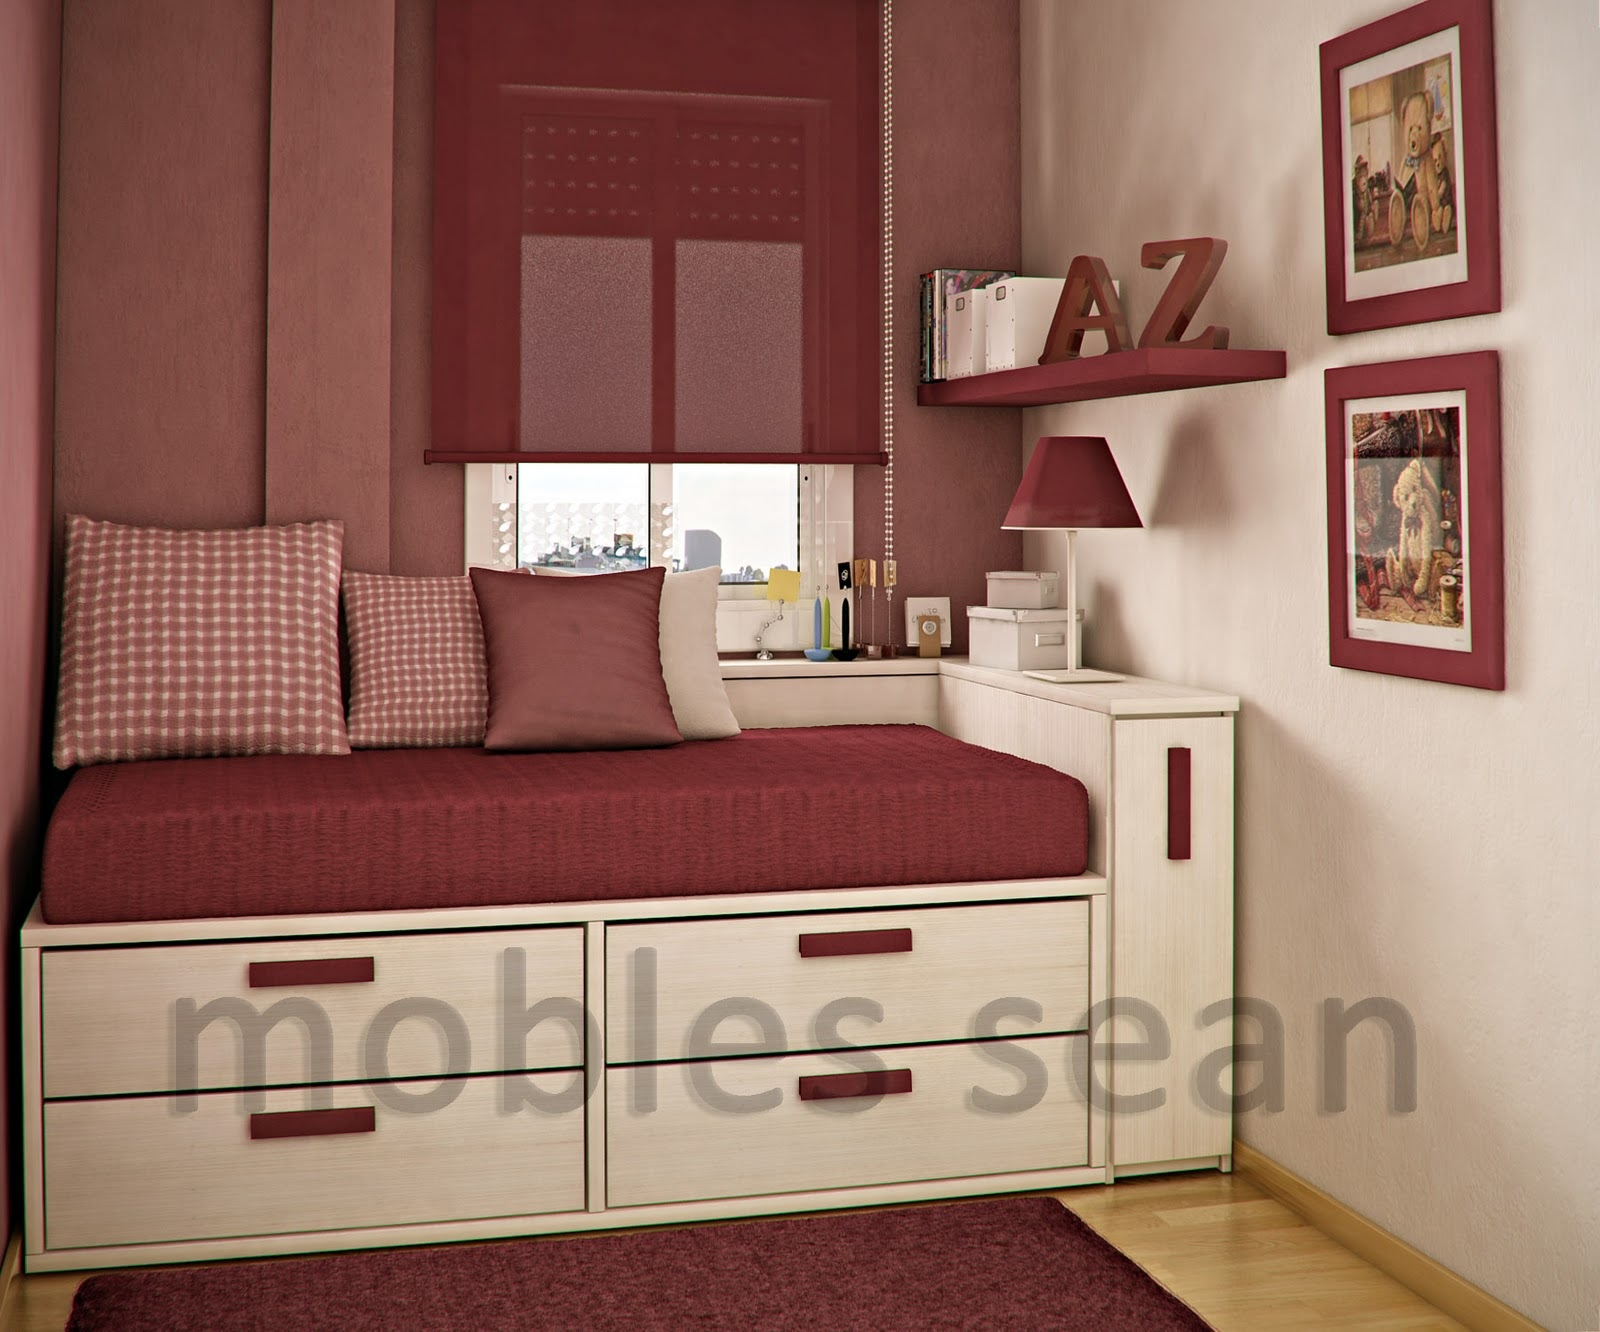 Bedroom Ideas Small Spaces space-saving designs for small kids rooms